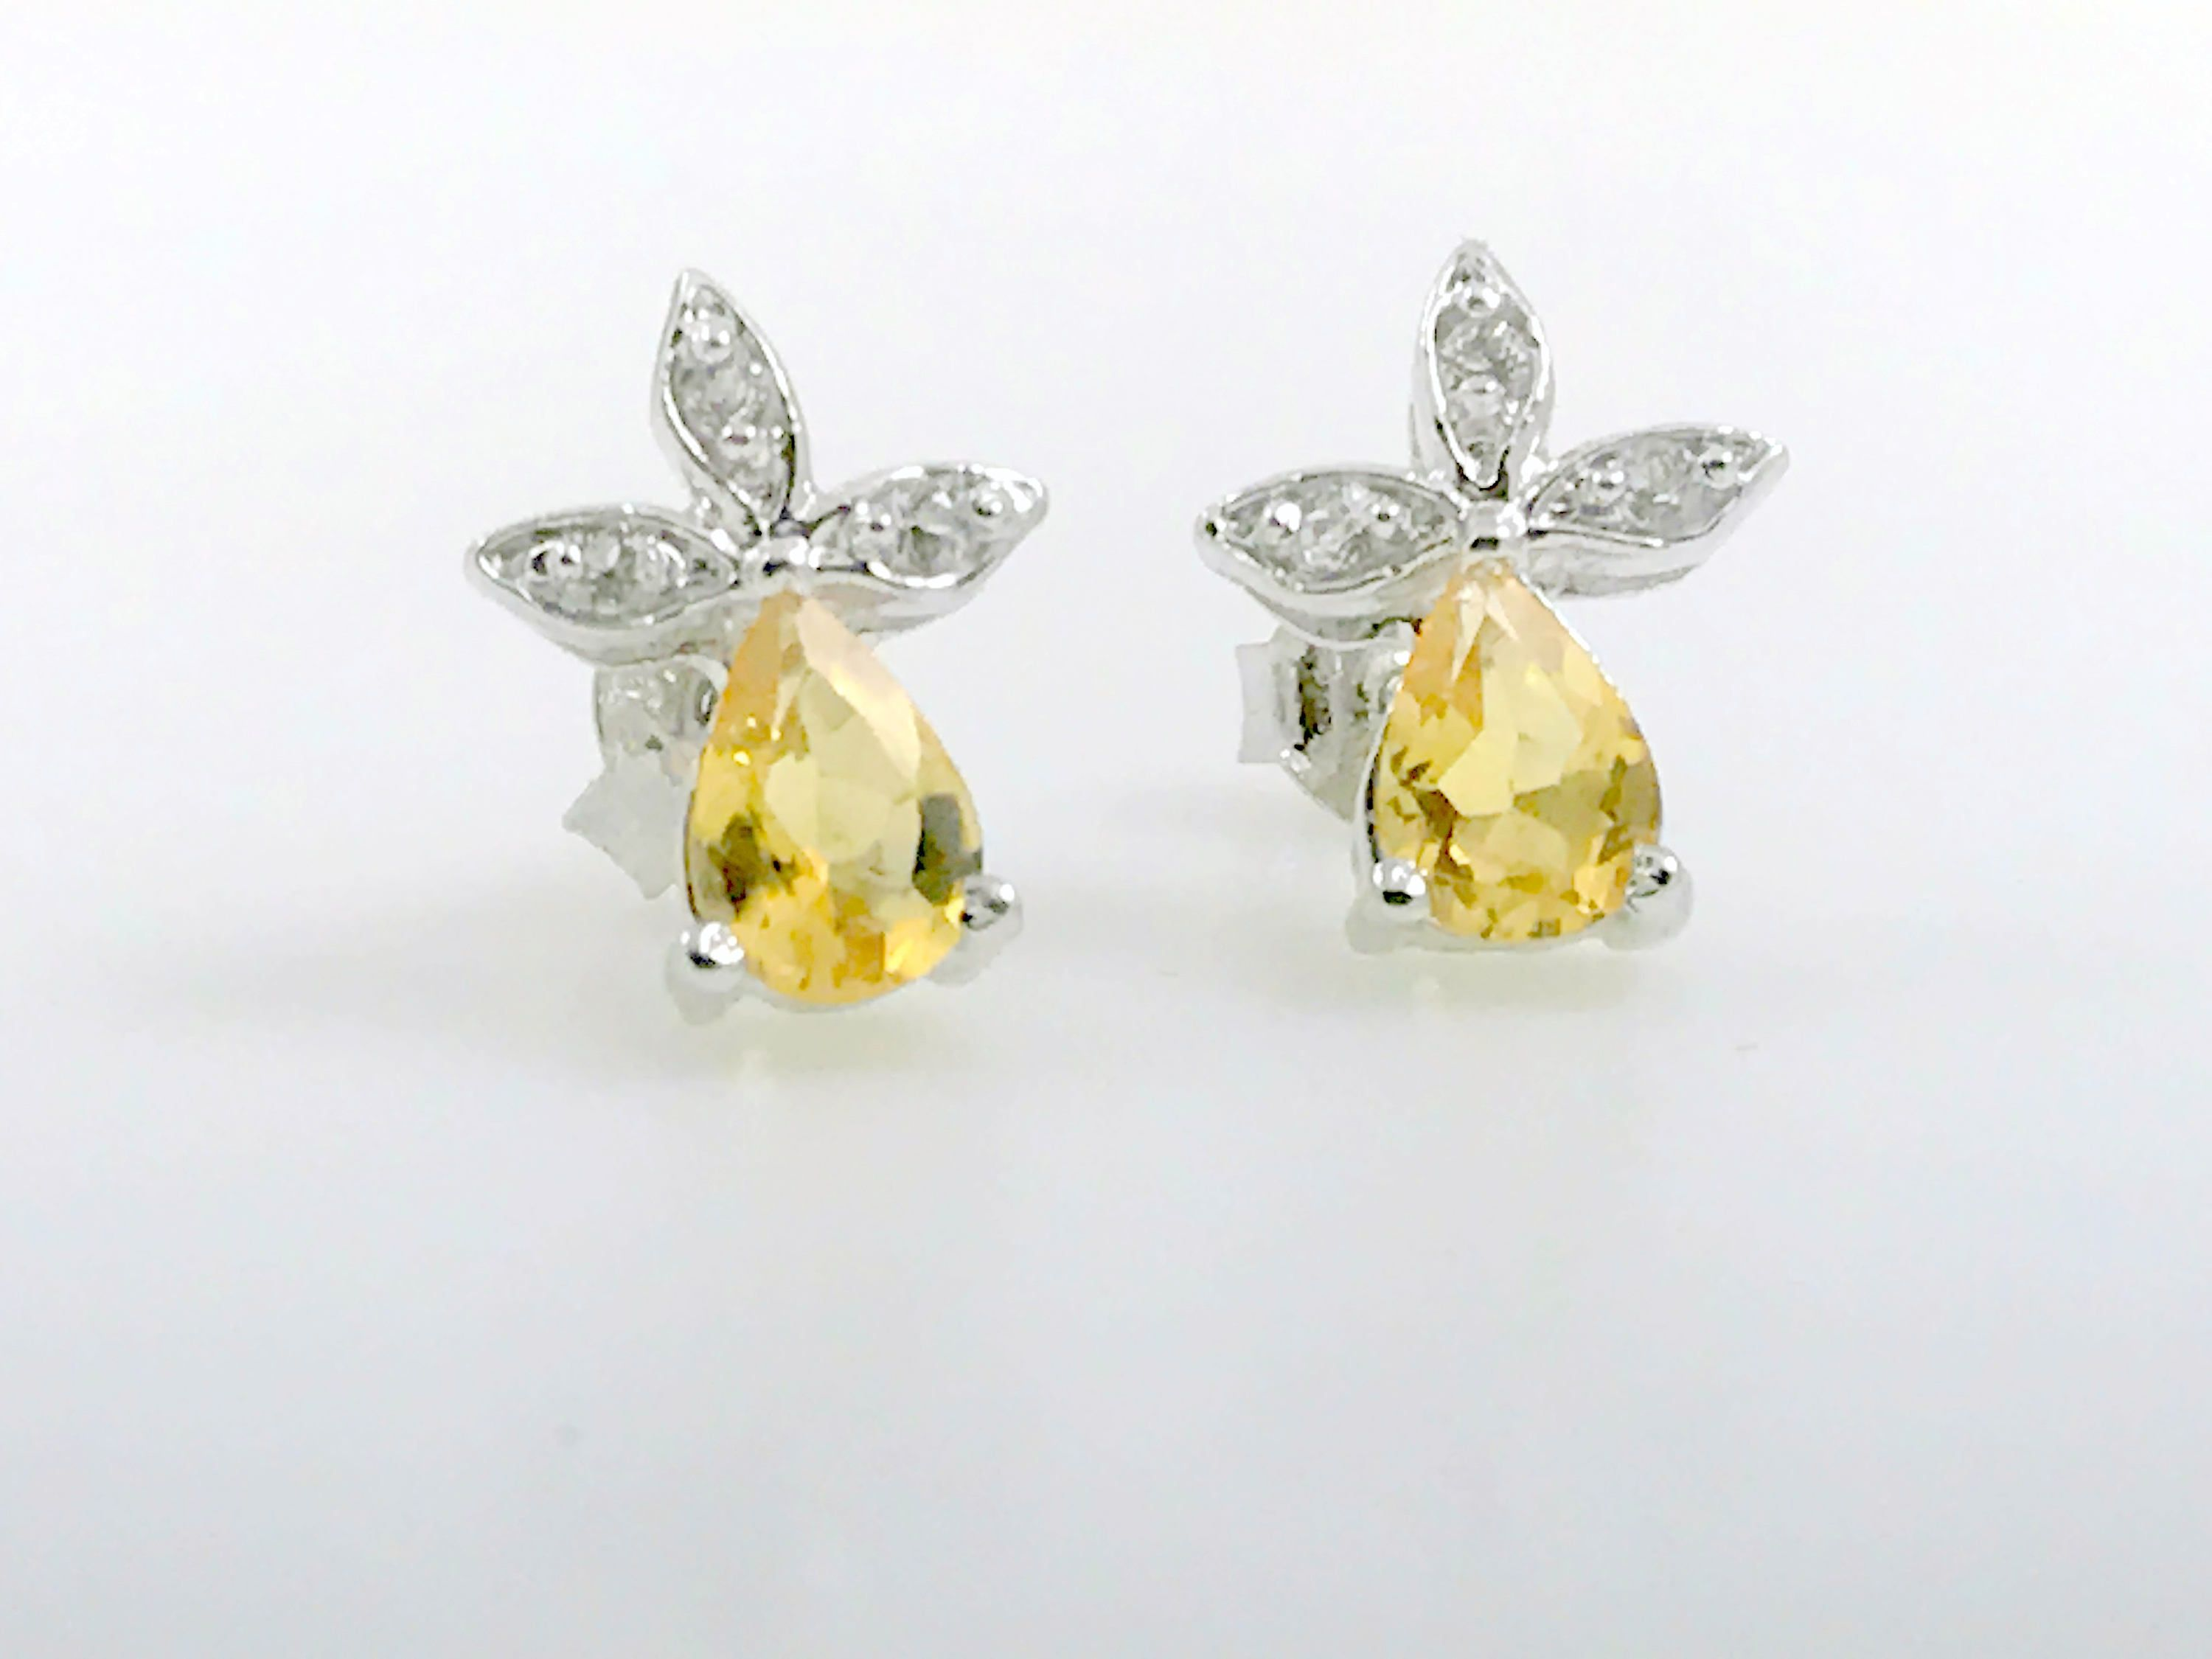 100 Natural Citrine Earrings Beautiful Yellow Topaz Stud With White In Pave Set November Birthstone By Bnaqshatrajewels On Etsy